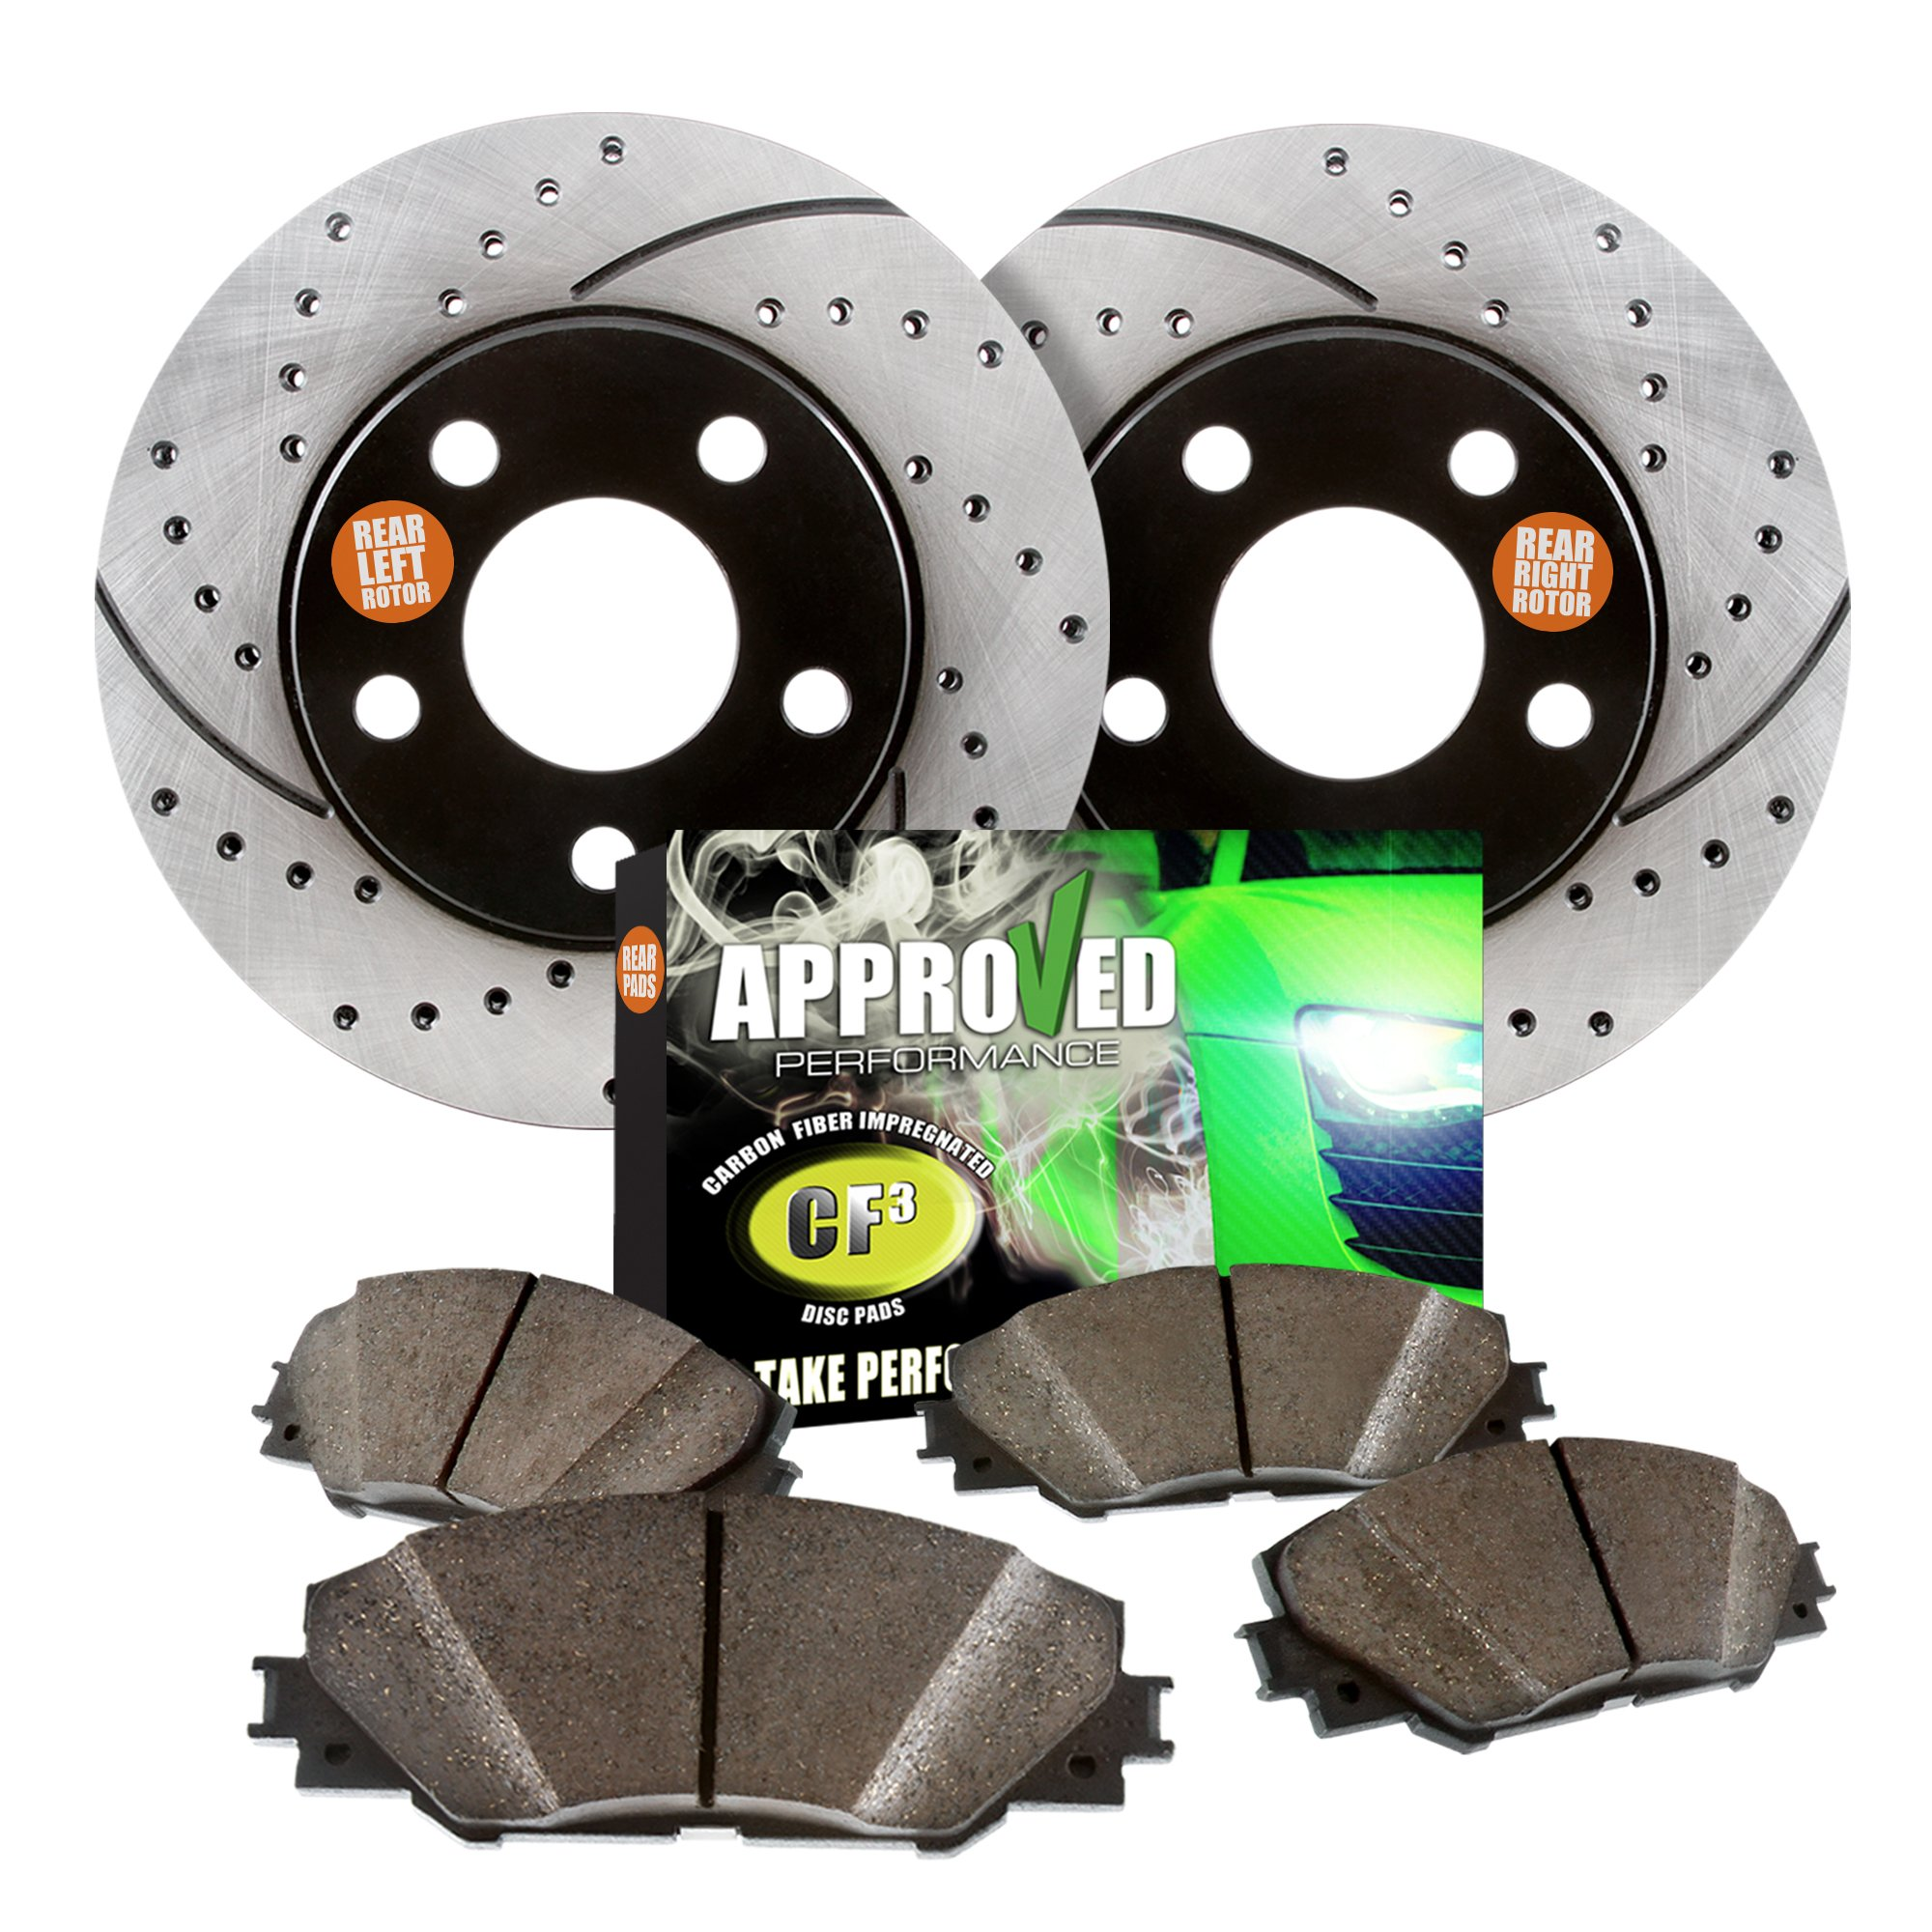 Approved Performance E12964 - [Rear Kit] Premium Performance Drilled/Slotted Brake Rotors and Carbon Fiber Pads